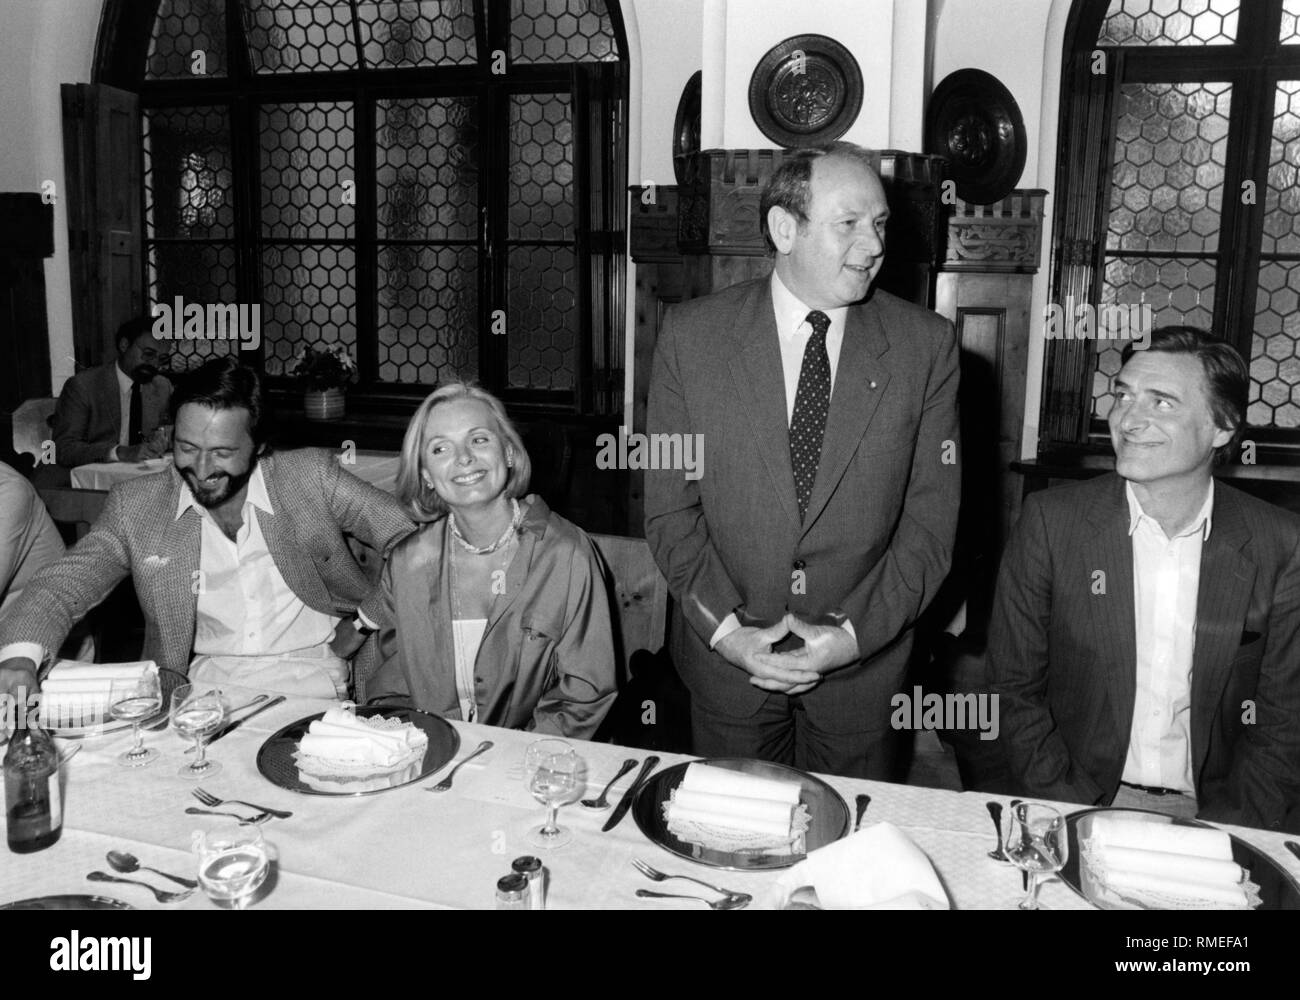 Munich's Mayor Erich Kiesl (CSU, 2nd from righ) with the creators of the television series Monaco Franze (from left): Director Helmut Dietl (l.), Monaco Franze main actor Helmut Fischer (r.) and his wife in the series Ruth Maria Kubitschek at a dinner presumably on the occasion of the first broadcast of the series in March 1983. - Stock Image